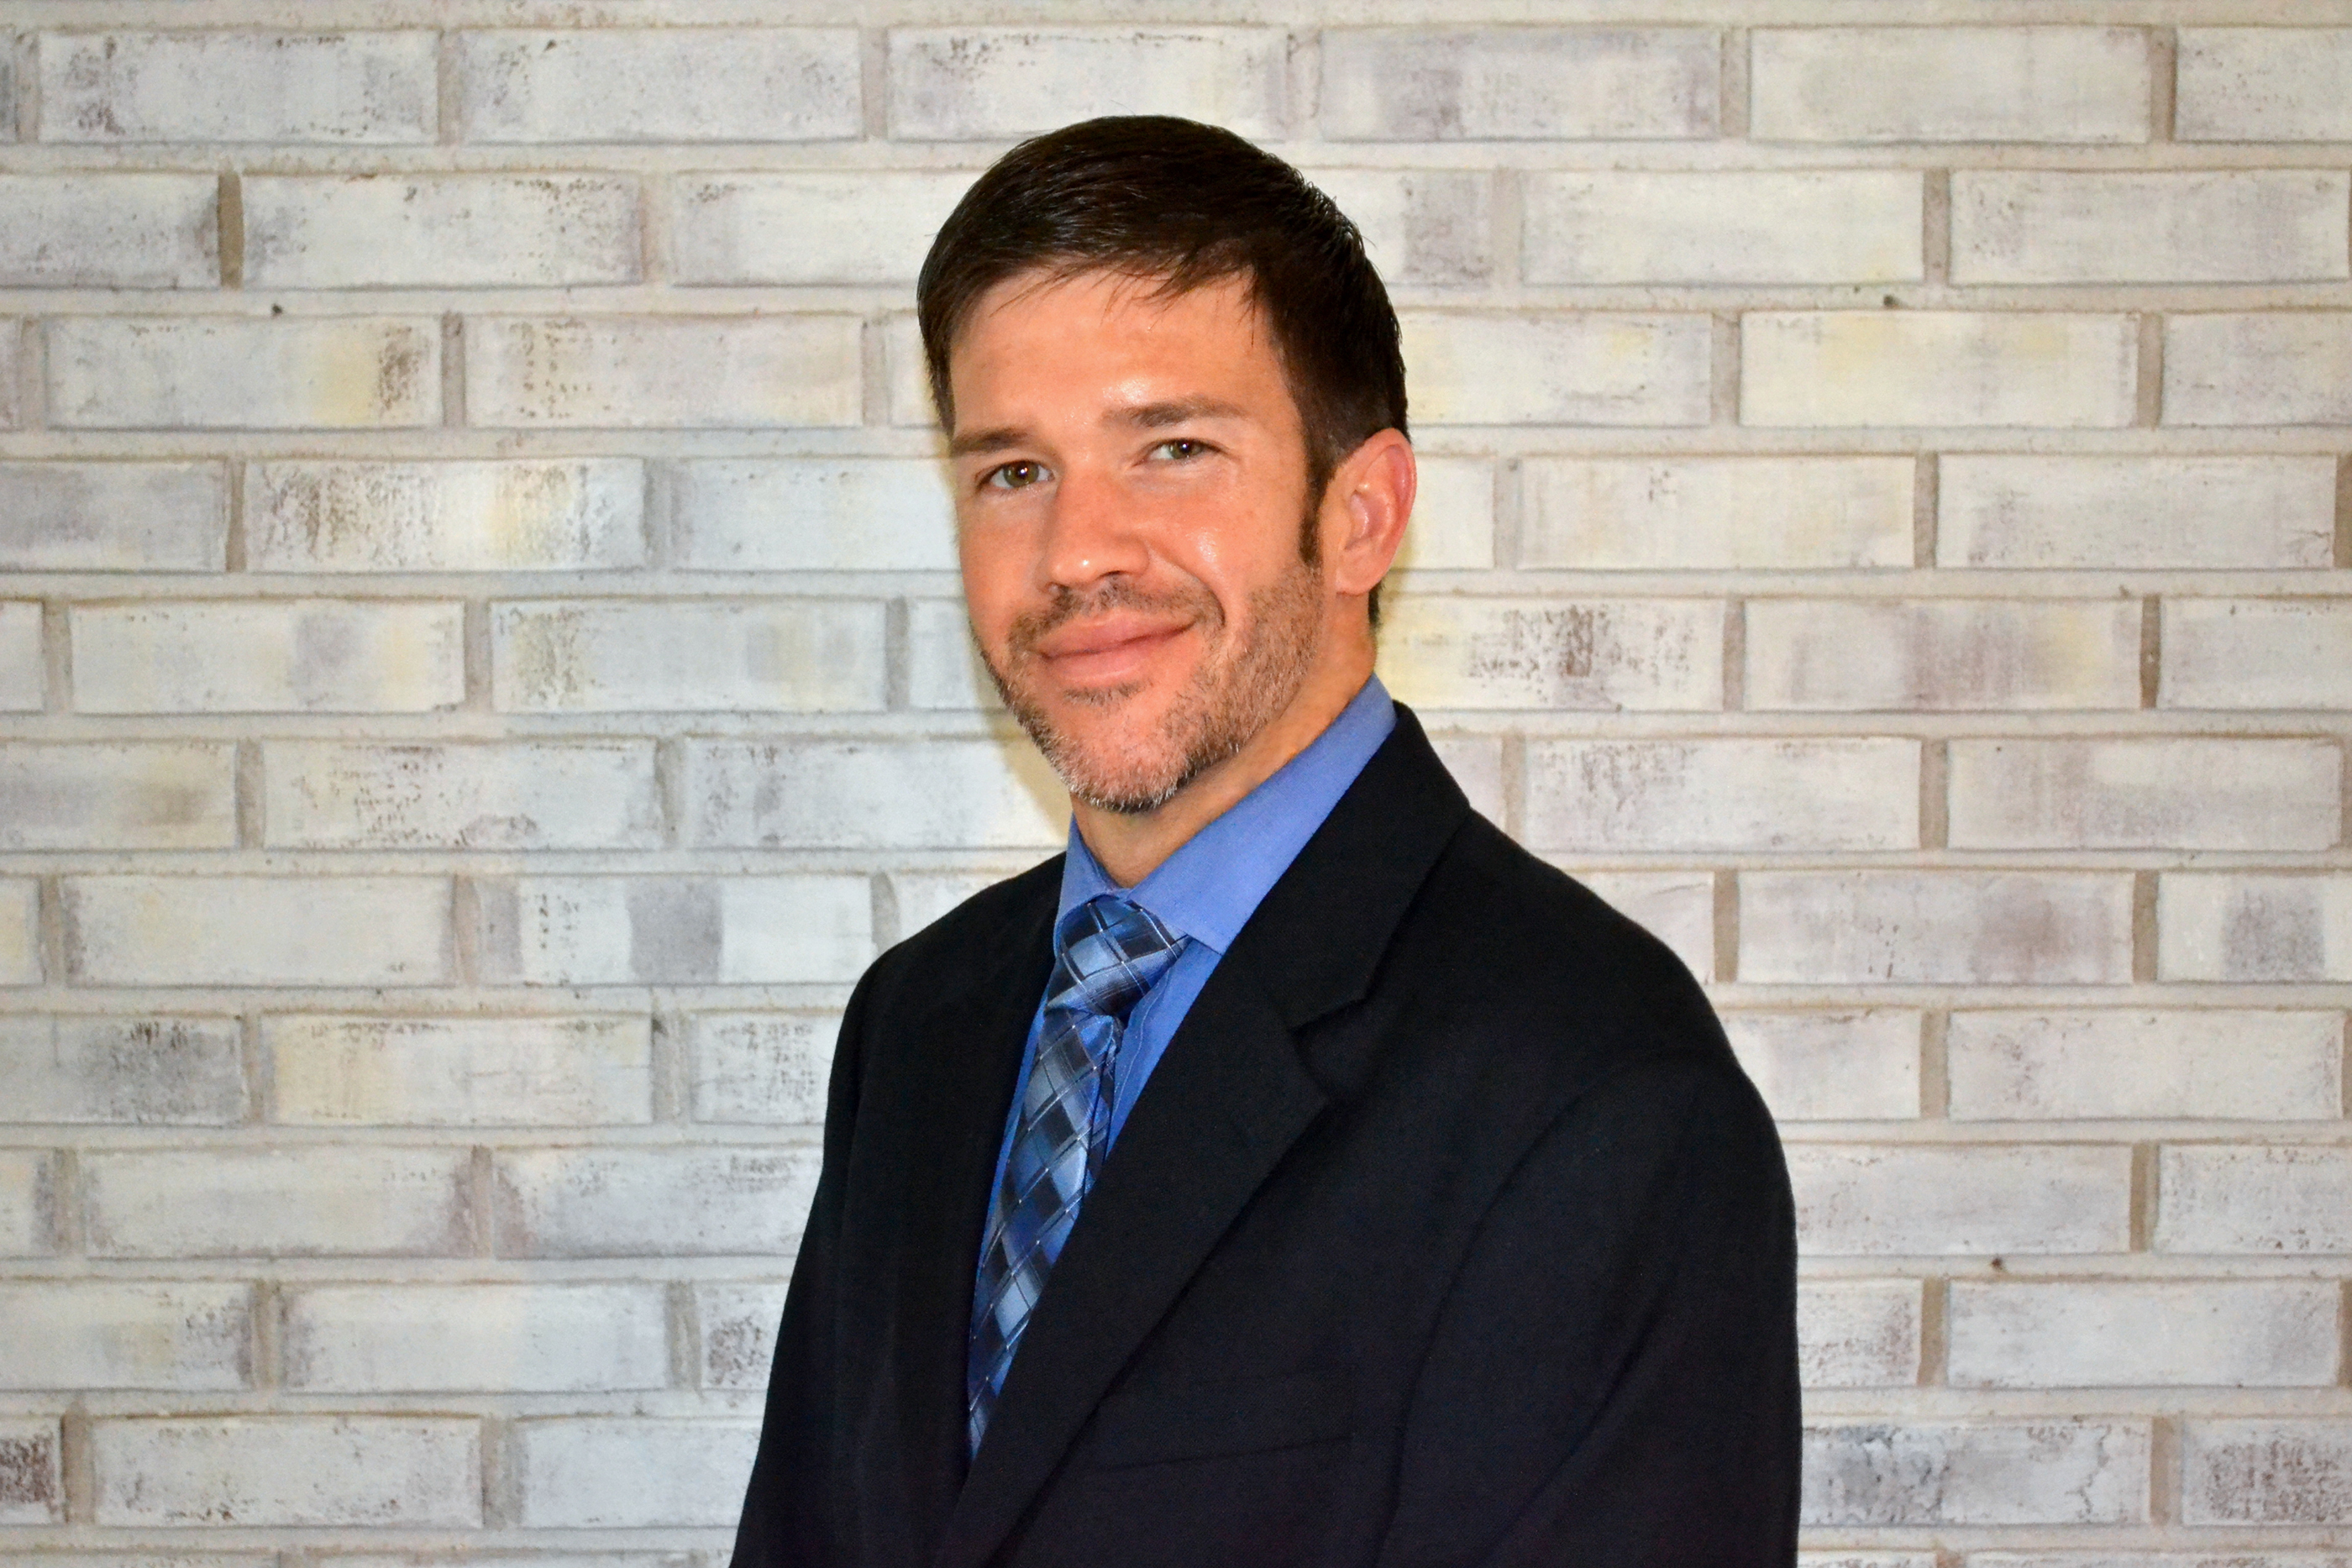 Shane Curry, UGA Extension Agriculture and Natural Resources agent in Appling County, will be honored at the Great Lakes Fruit, Vegetable and Farm Market on Dec. 4, 2018.